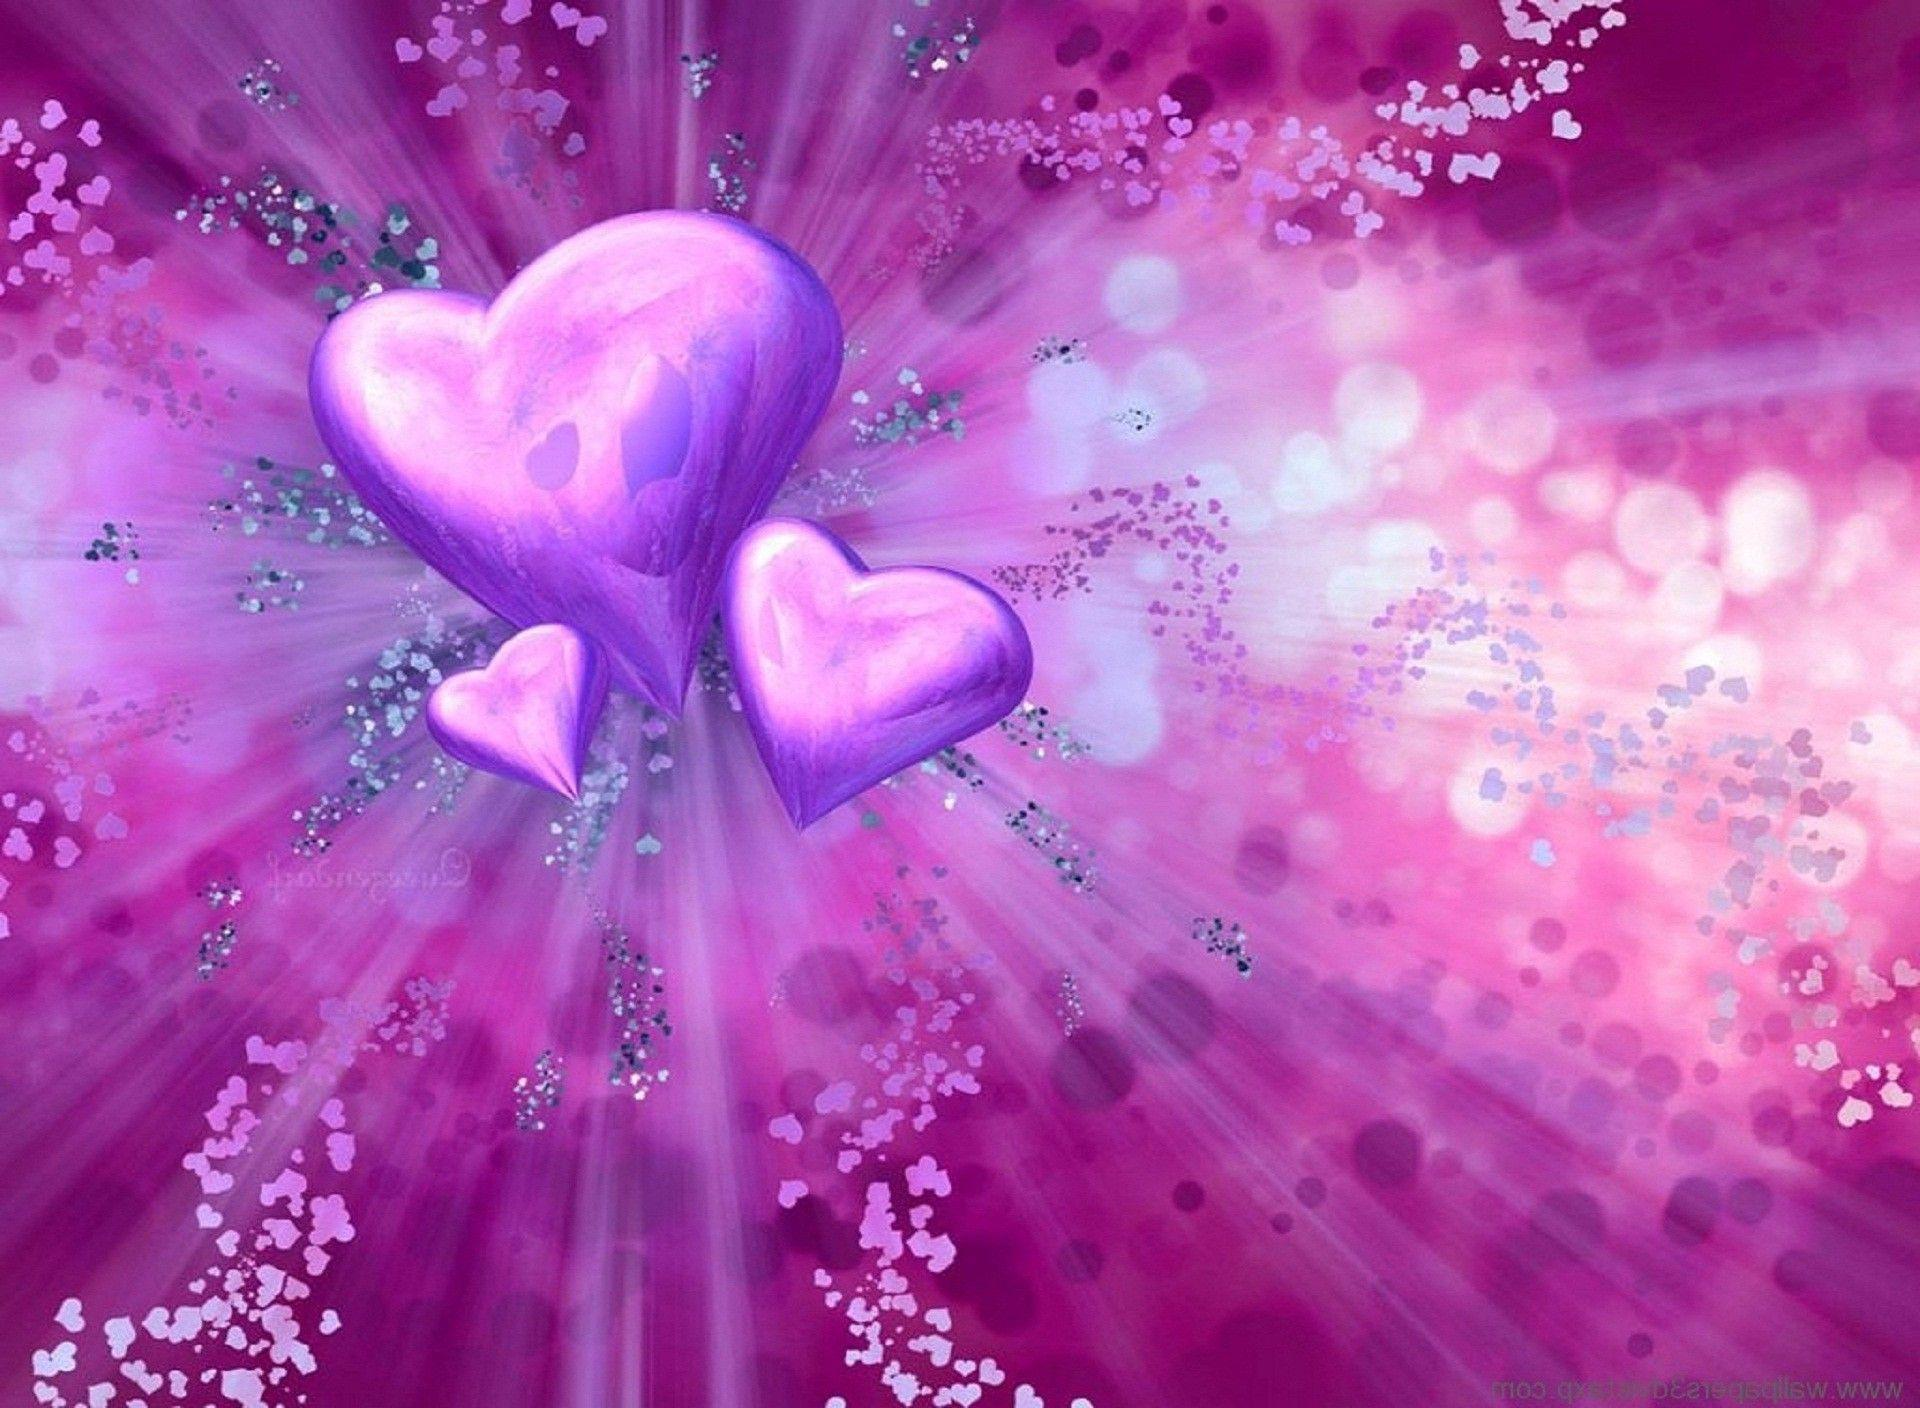 Love Wallpapers 3D - Wallpaper cave